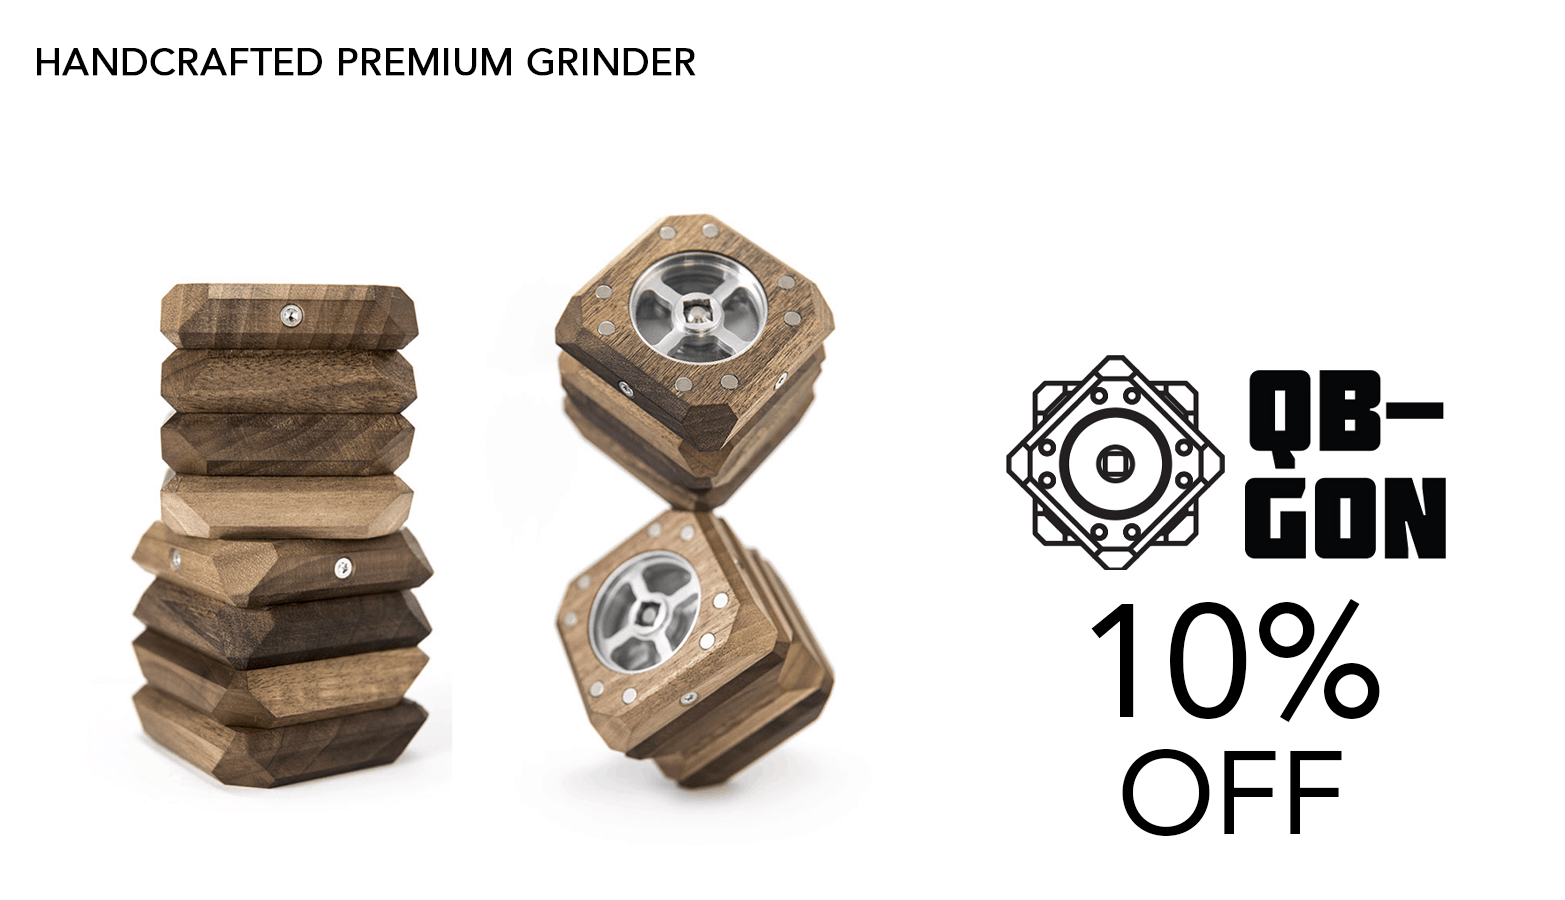 QB-GON Cannabis Grinders Coupon Code Offer Website